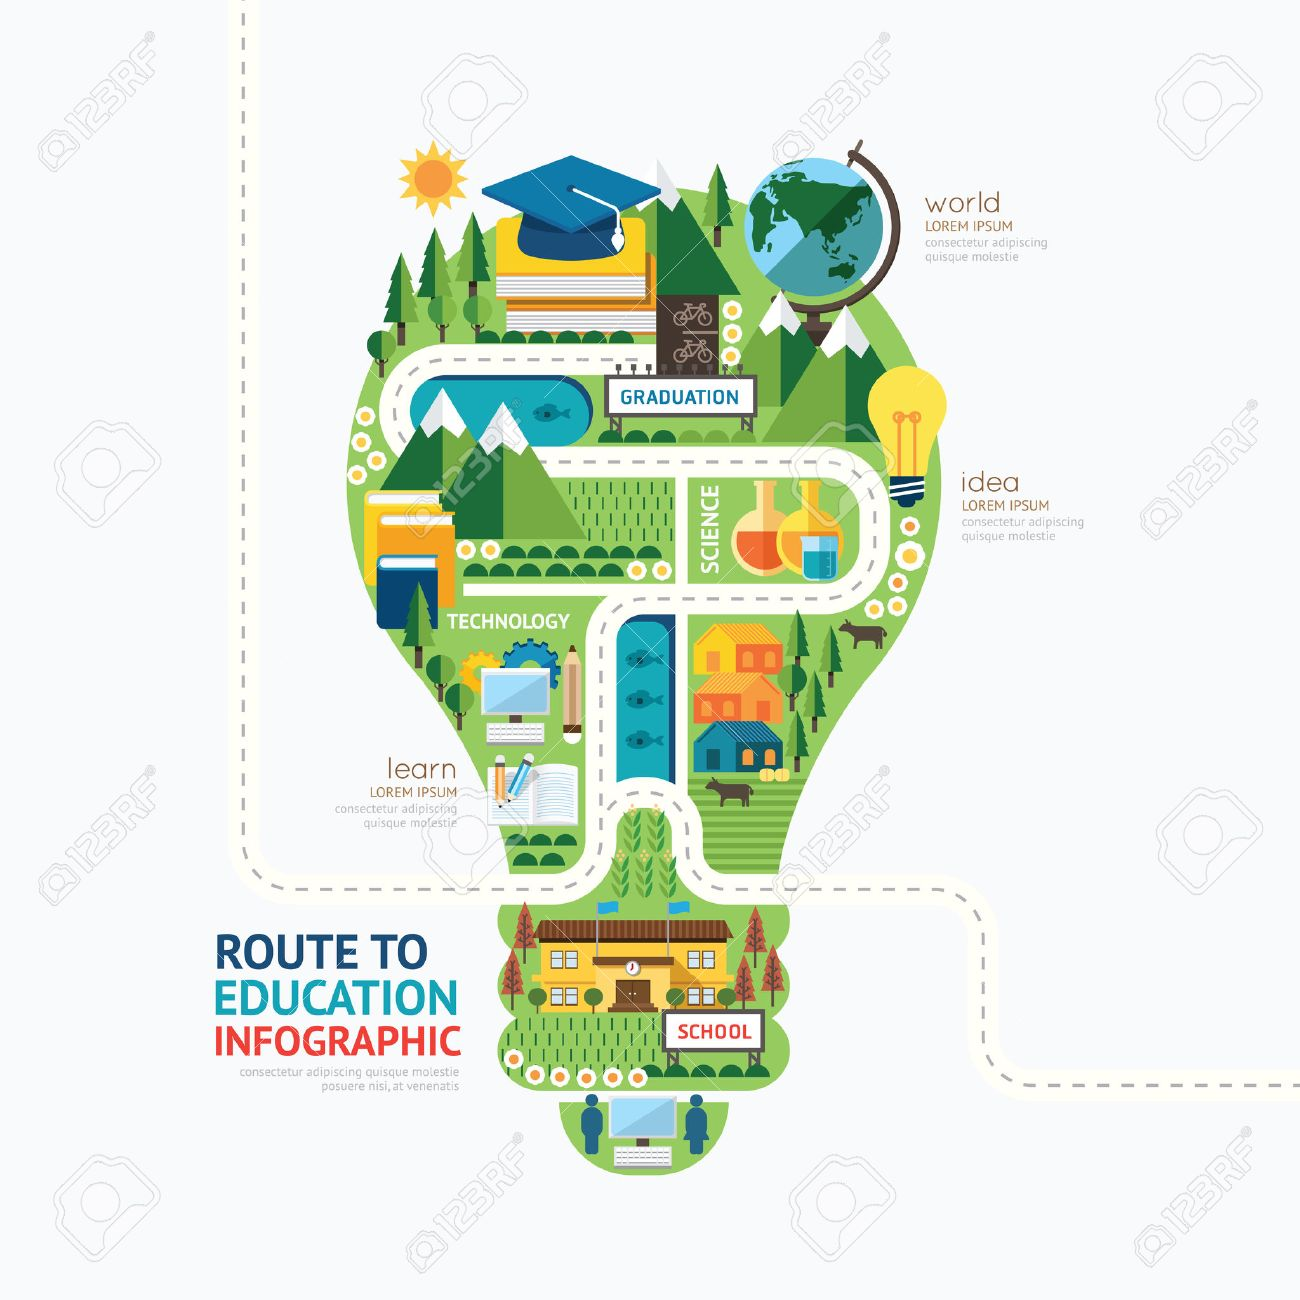 Infographic education light bulb shape template design.learn concept vector illustration / graphic or web design layout. Stock Vector - 37076425